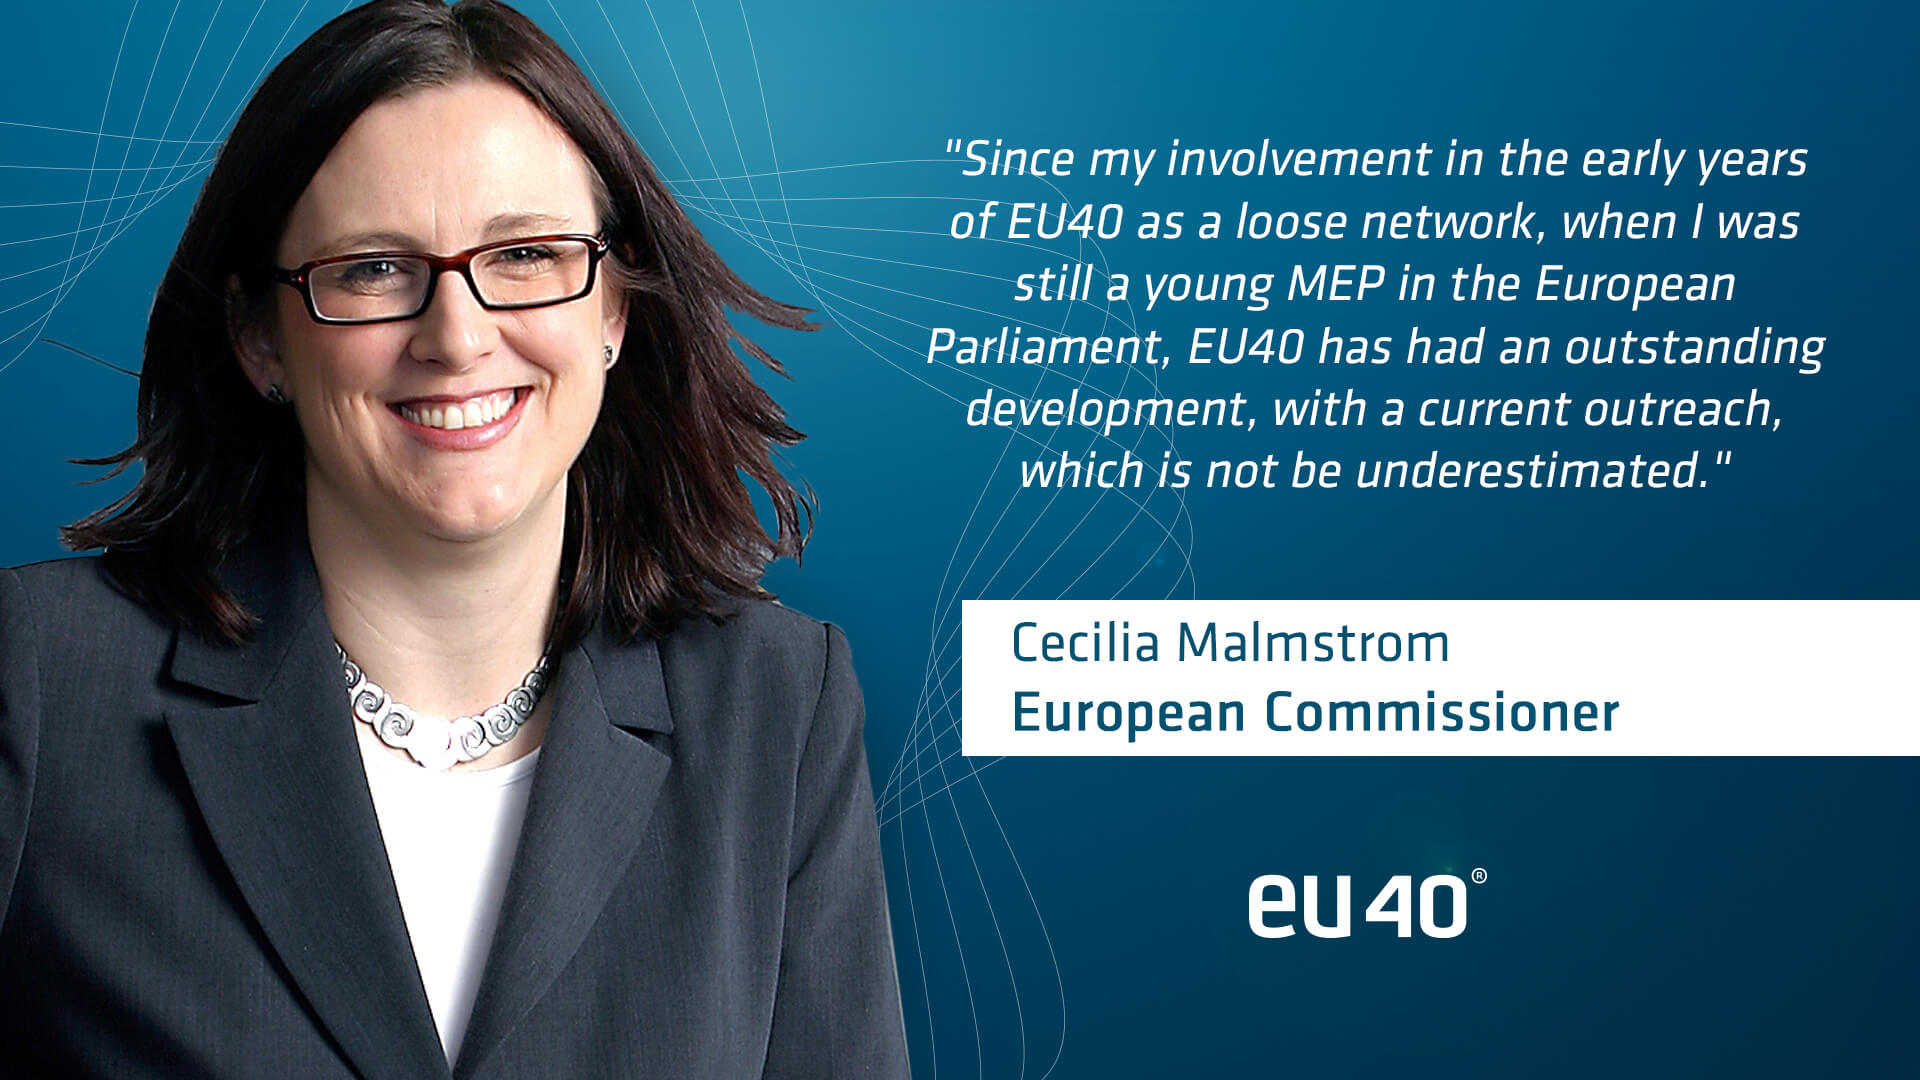 Cecilia-MalmStrom_Supports-eu40-QUOTE_March16 (1) (1)